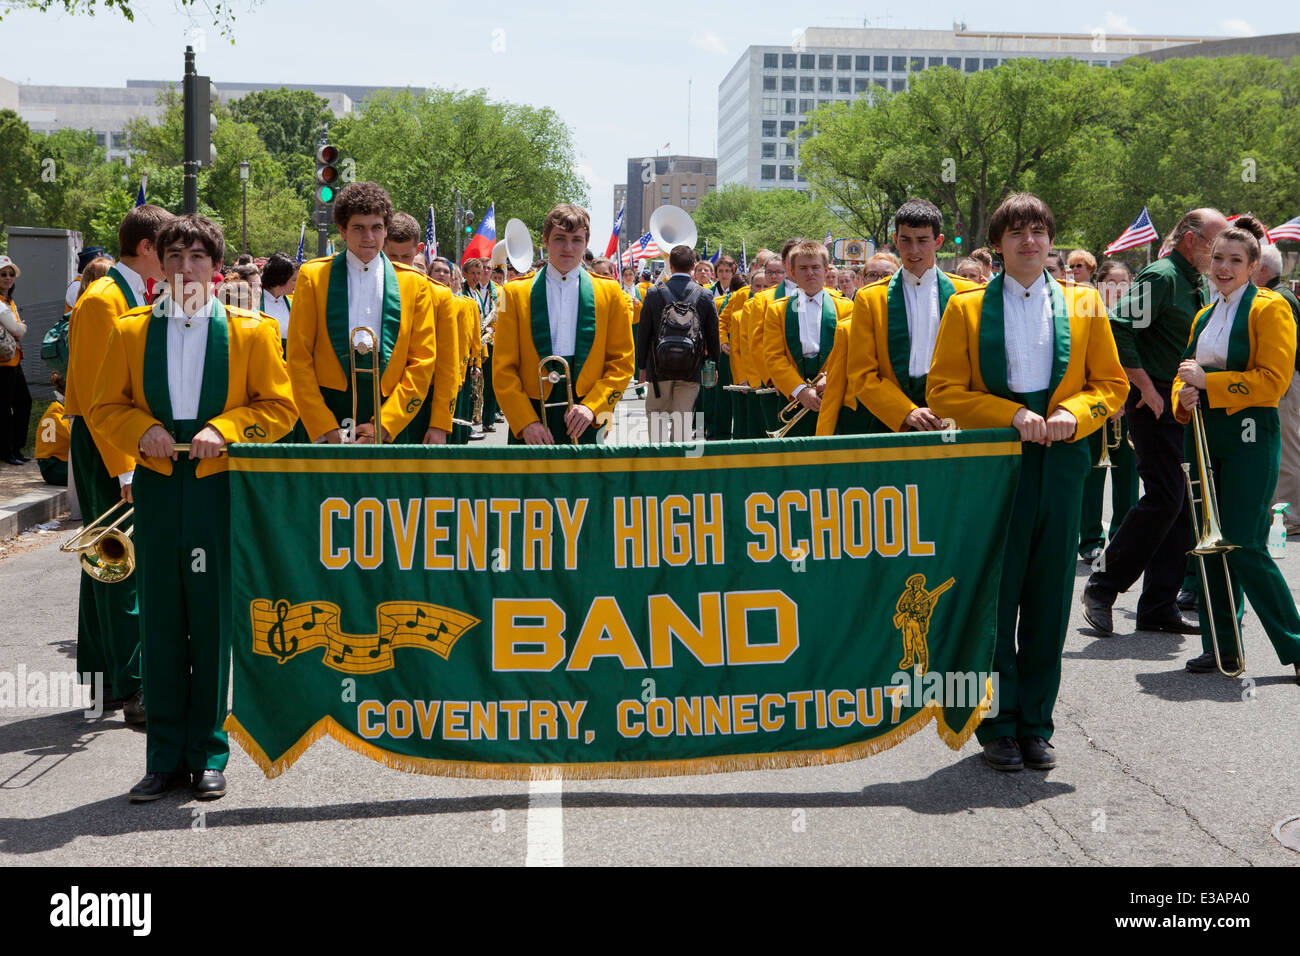 High school marching band banner - USA Immagini Stock